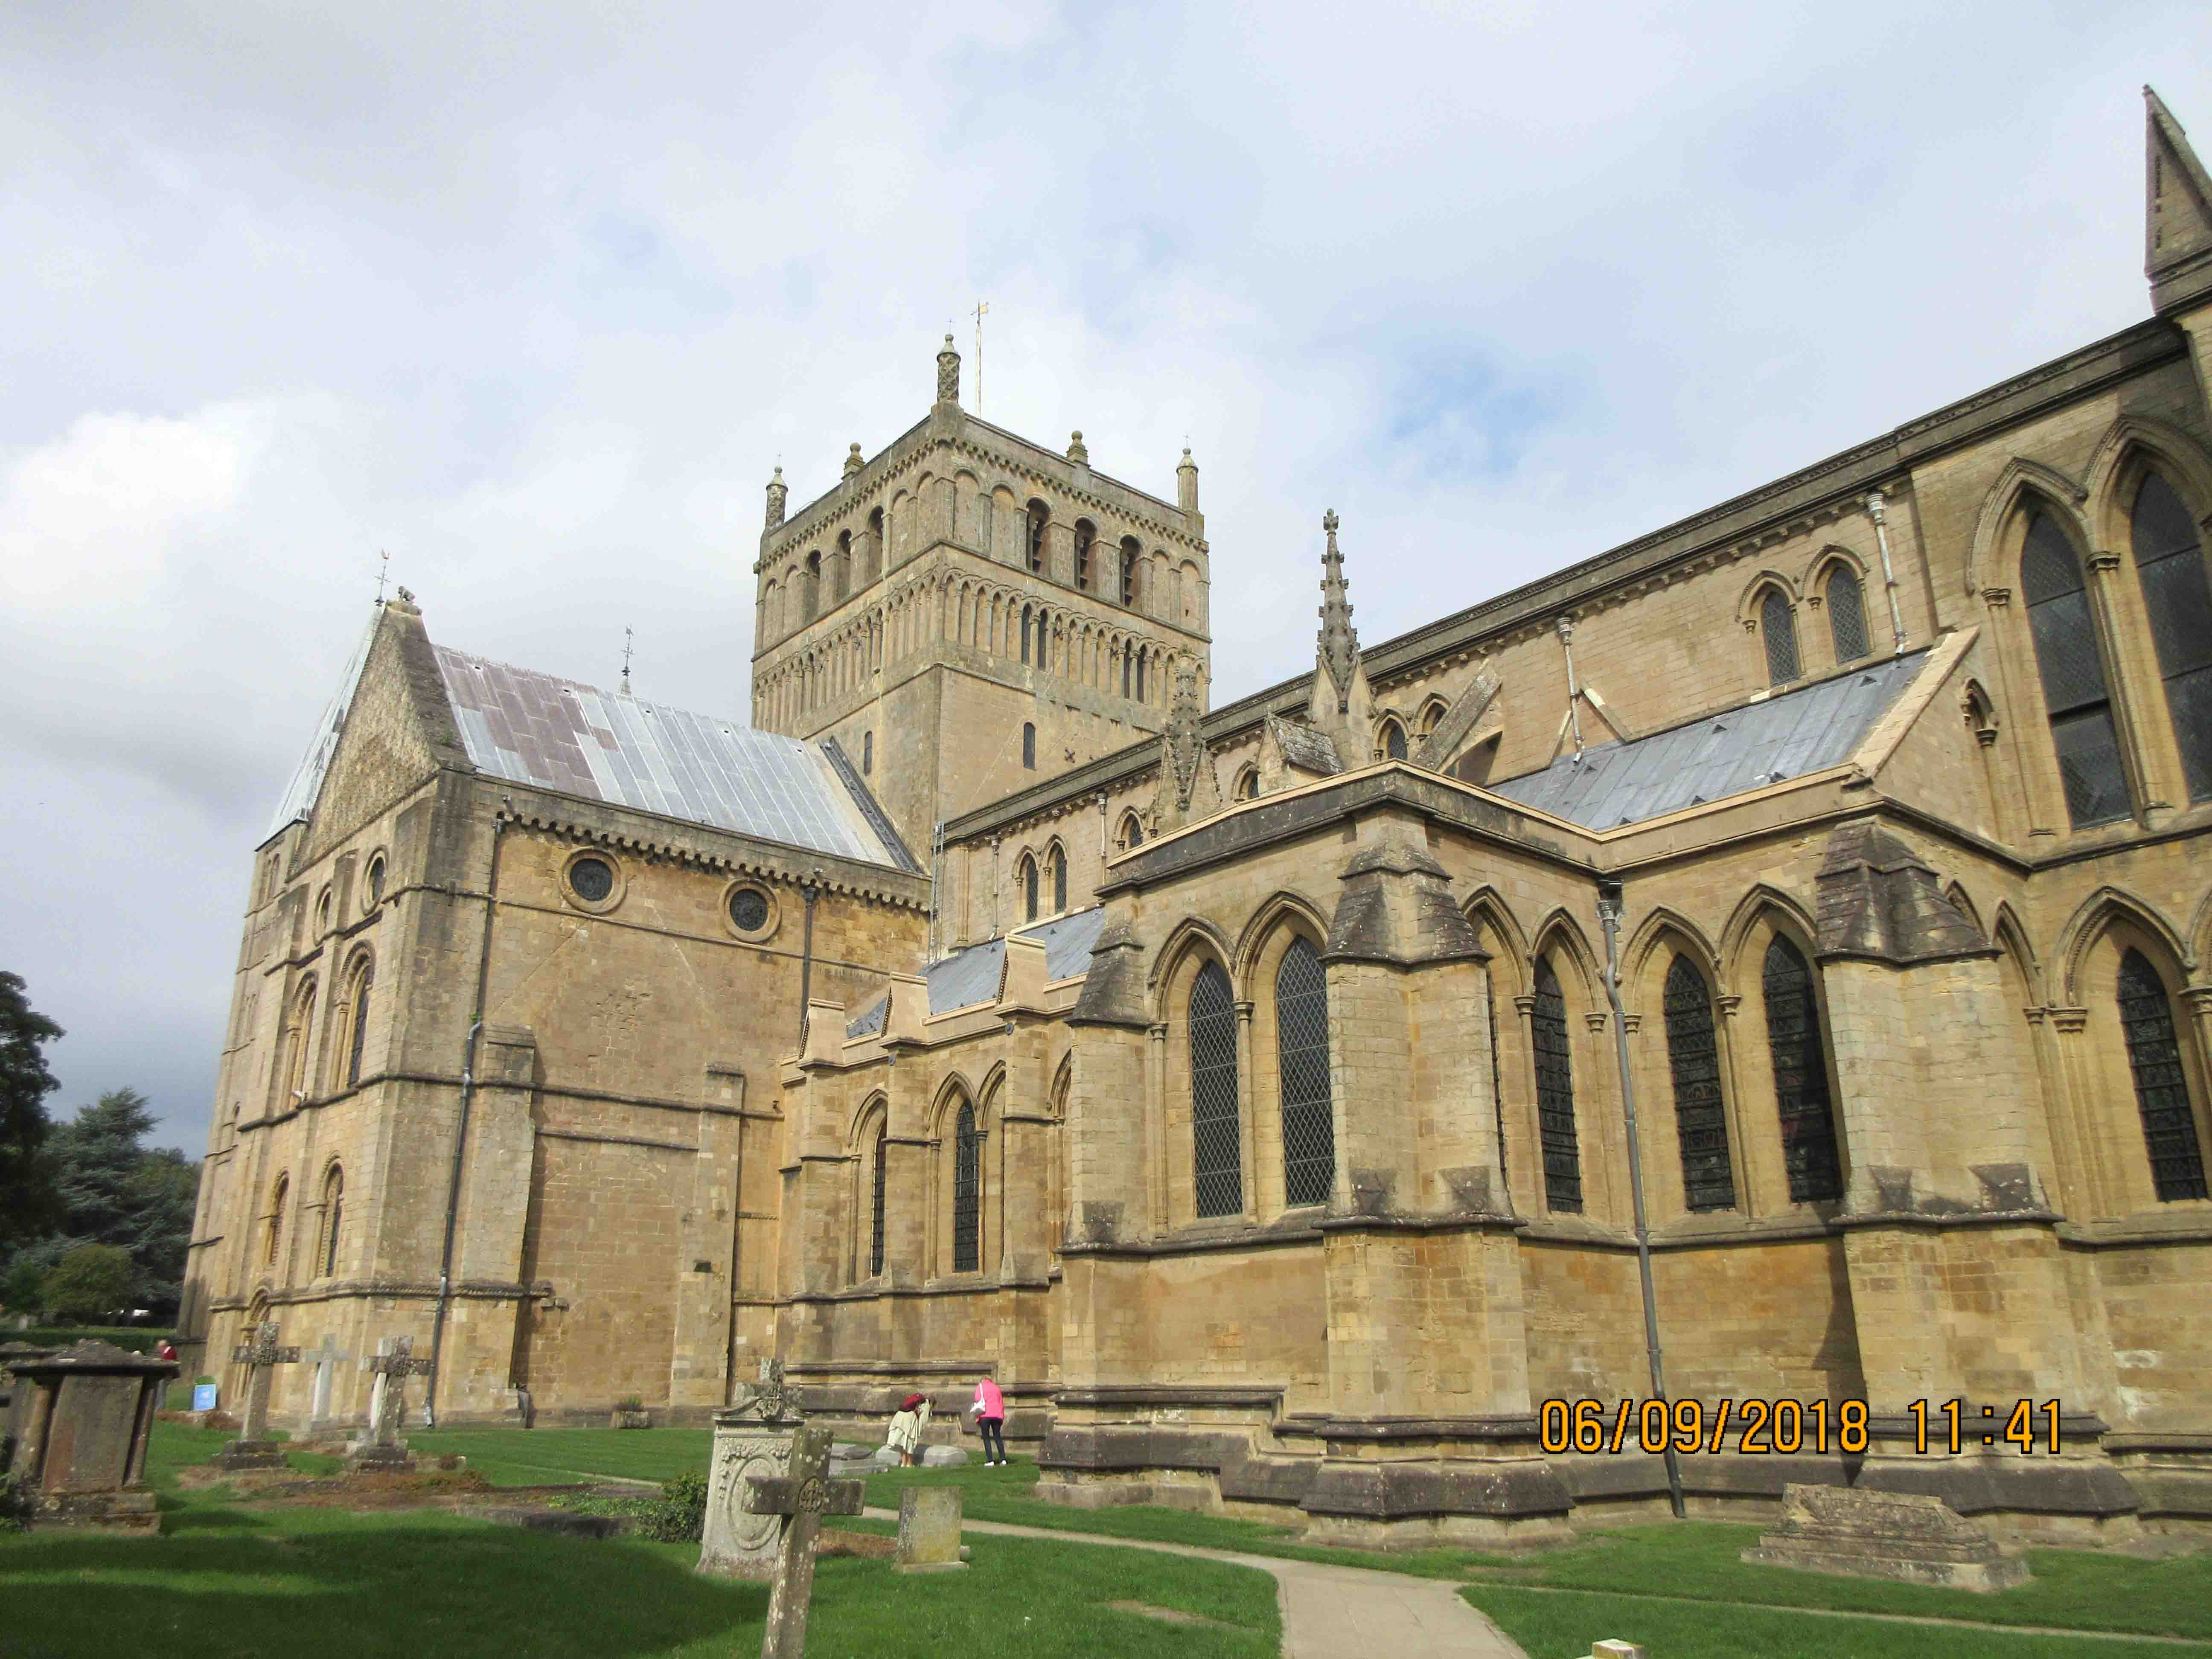 Southall Minster